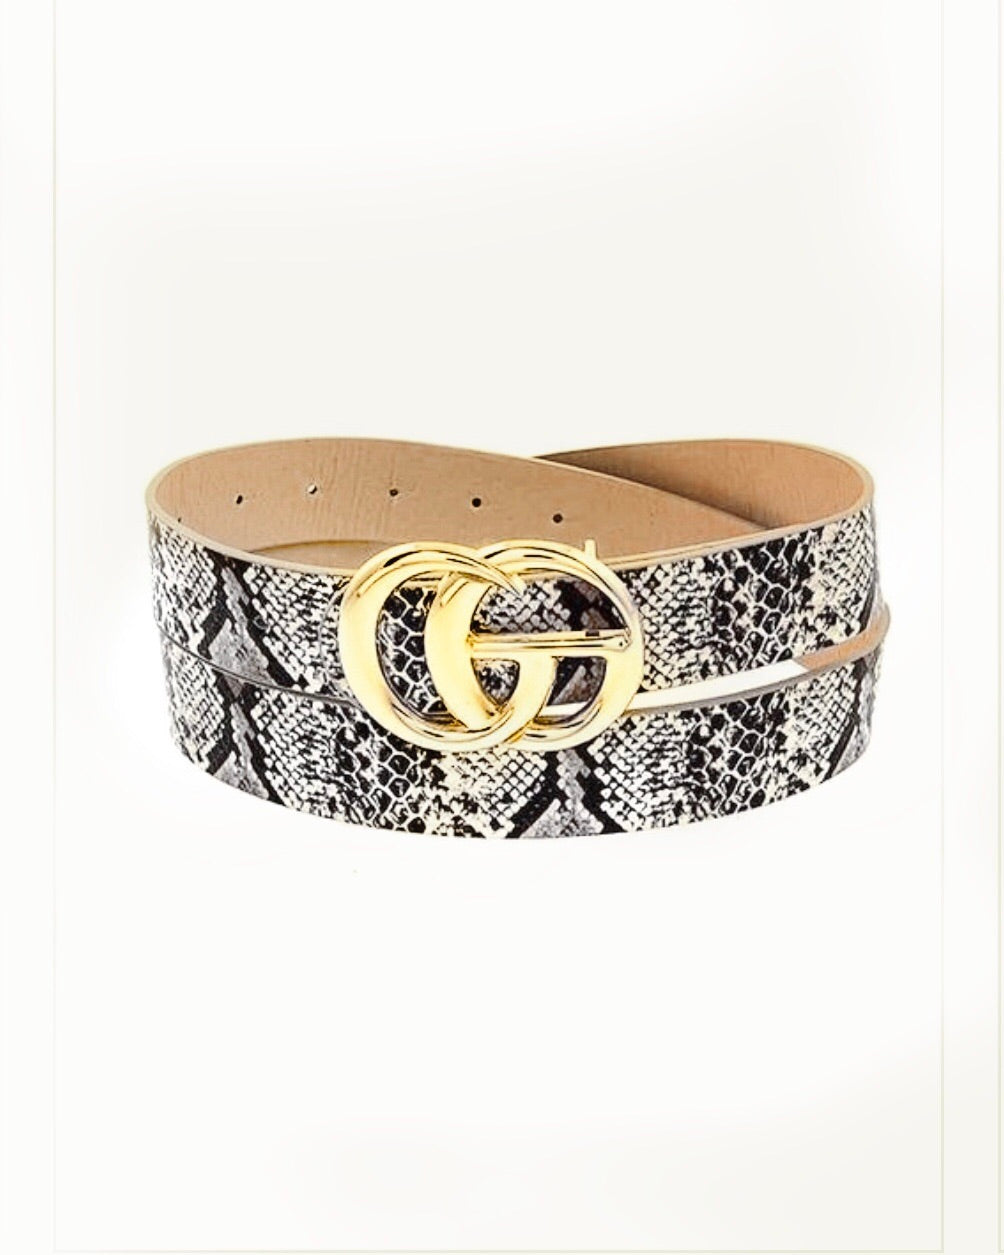 Snake Skin Fashion Belt